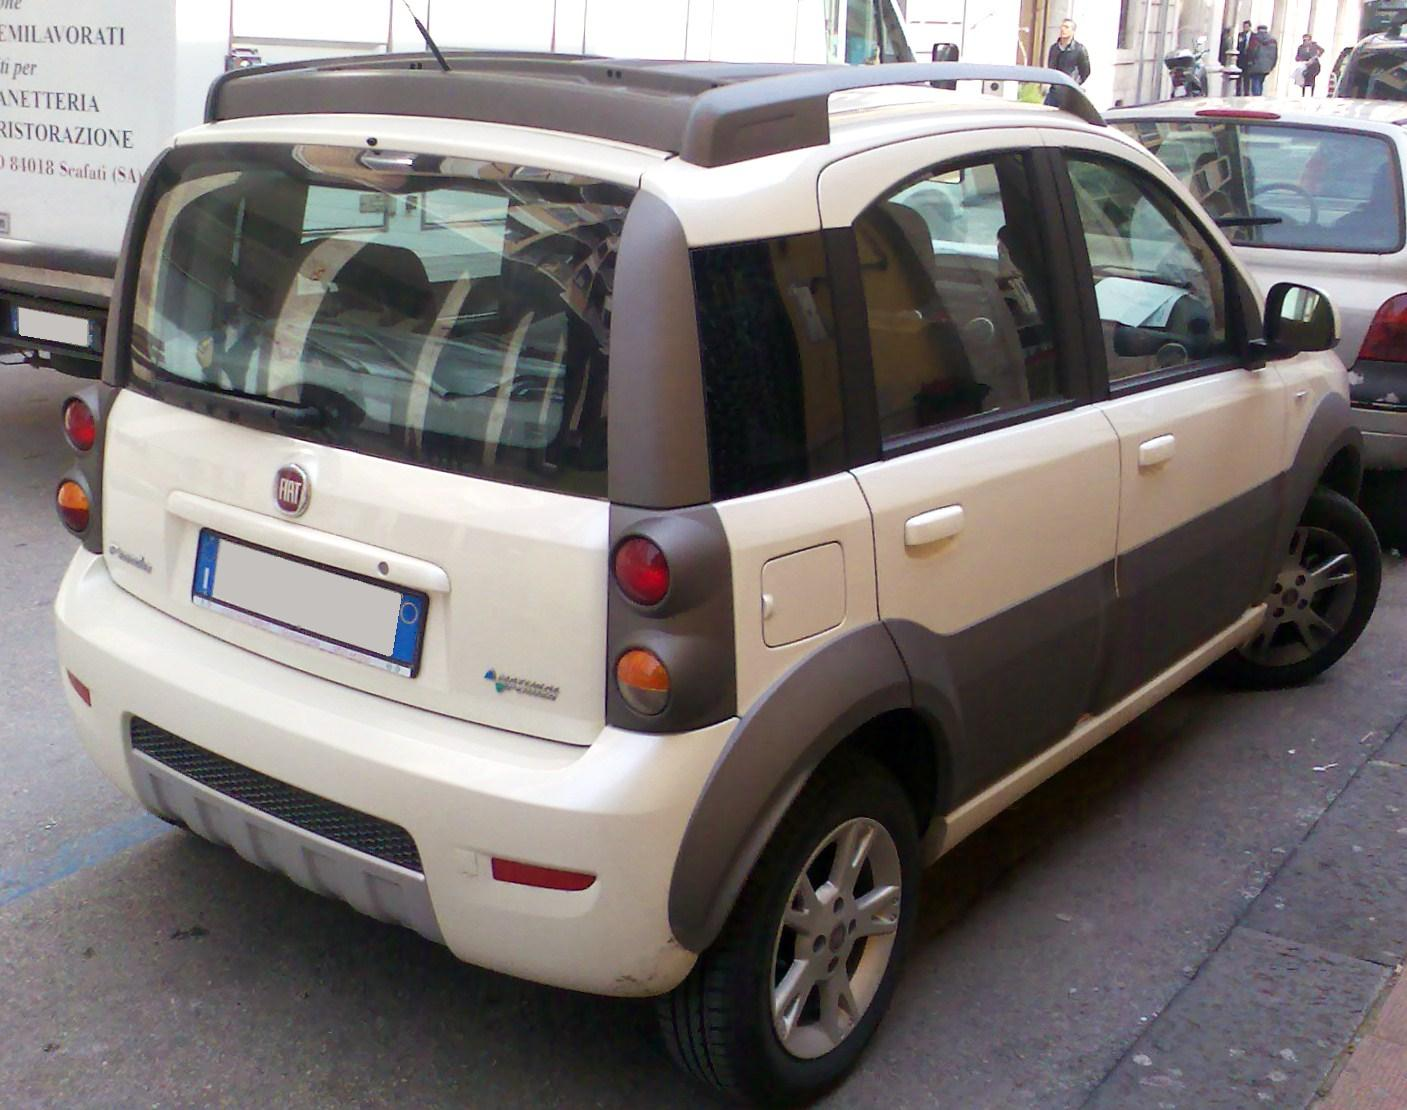 file 2010 fiat panda panda natural power. Black Bedroom Furniture Sets. Home Design Ideas